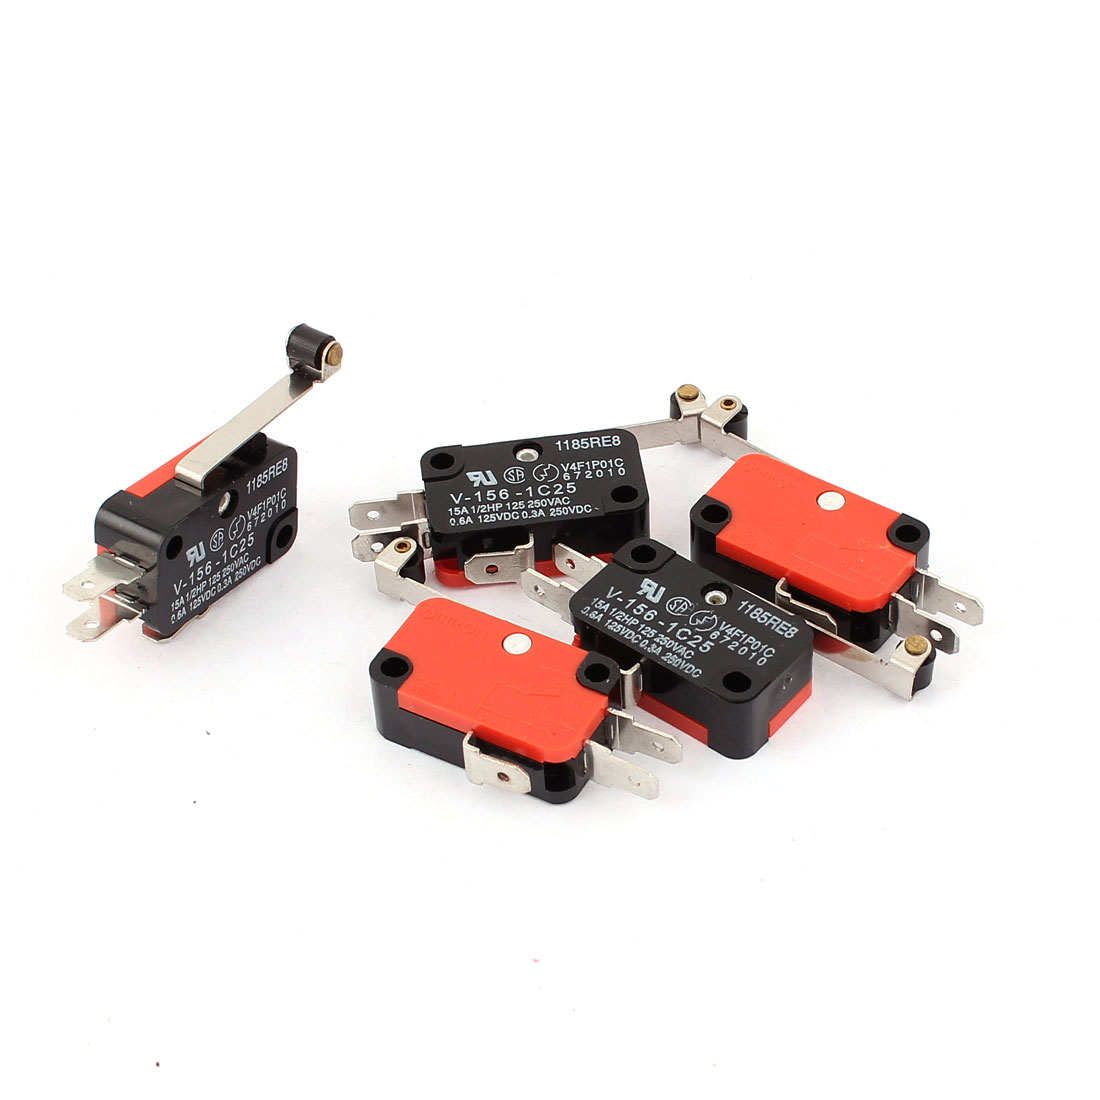 5 Pcs V-156-1C25 Long Hinge Roller Momentary SPDT NO/NC Micro Limit Switch